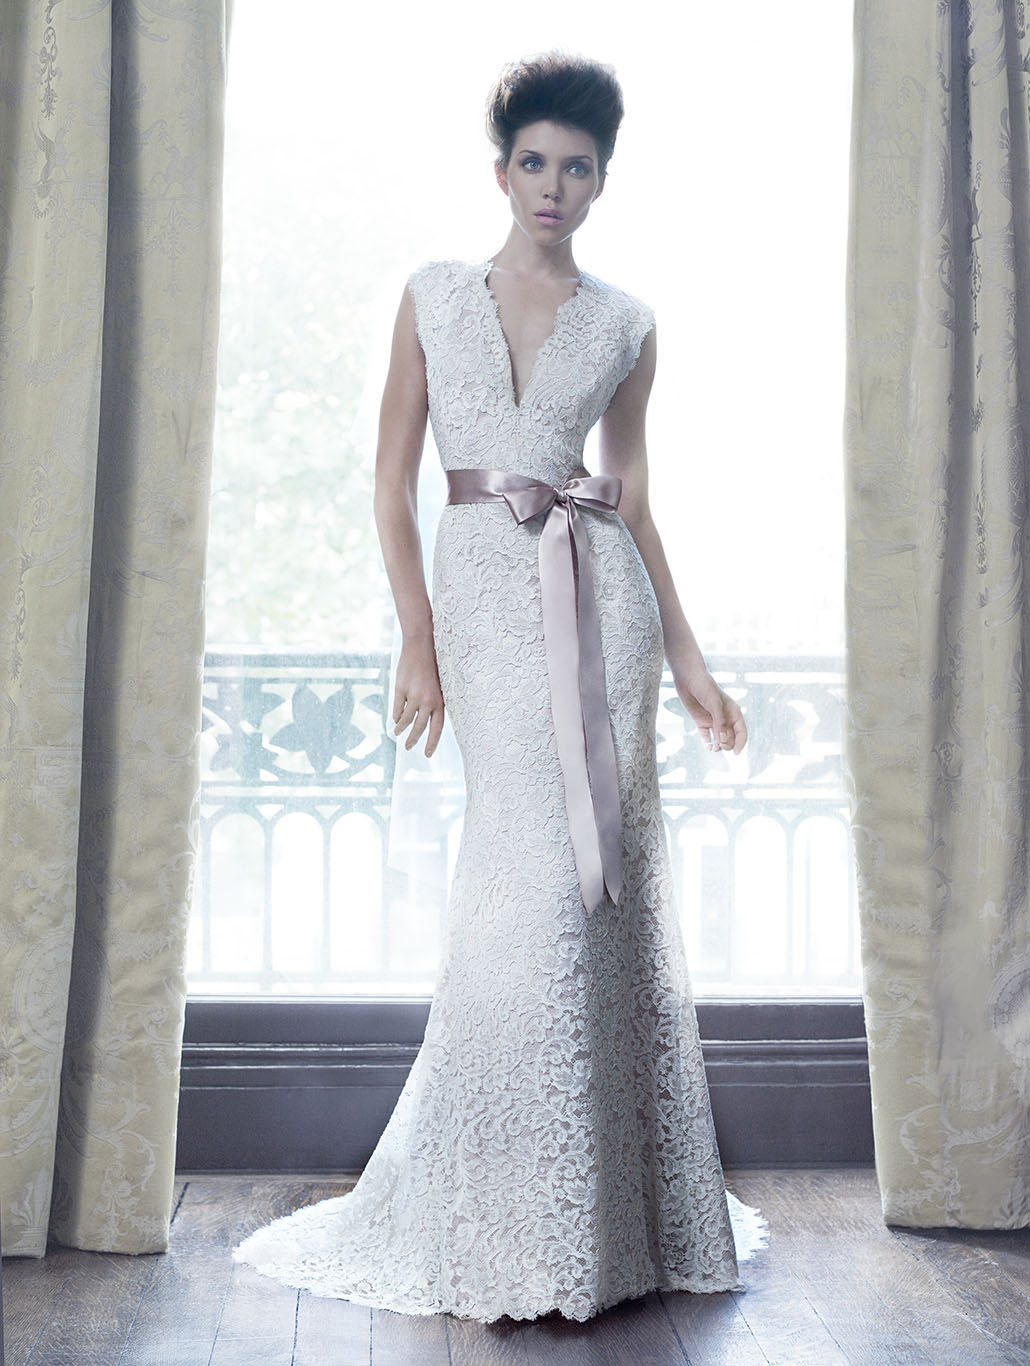 Radiance | Champagne Wedding Dress by Suzanne Neville